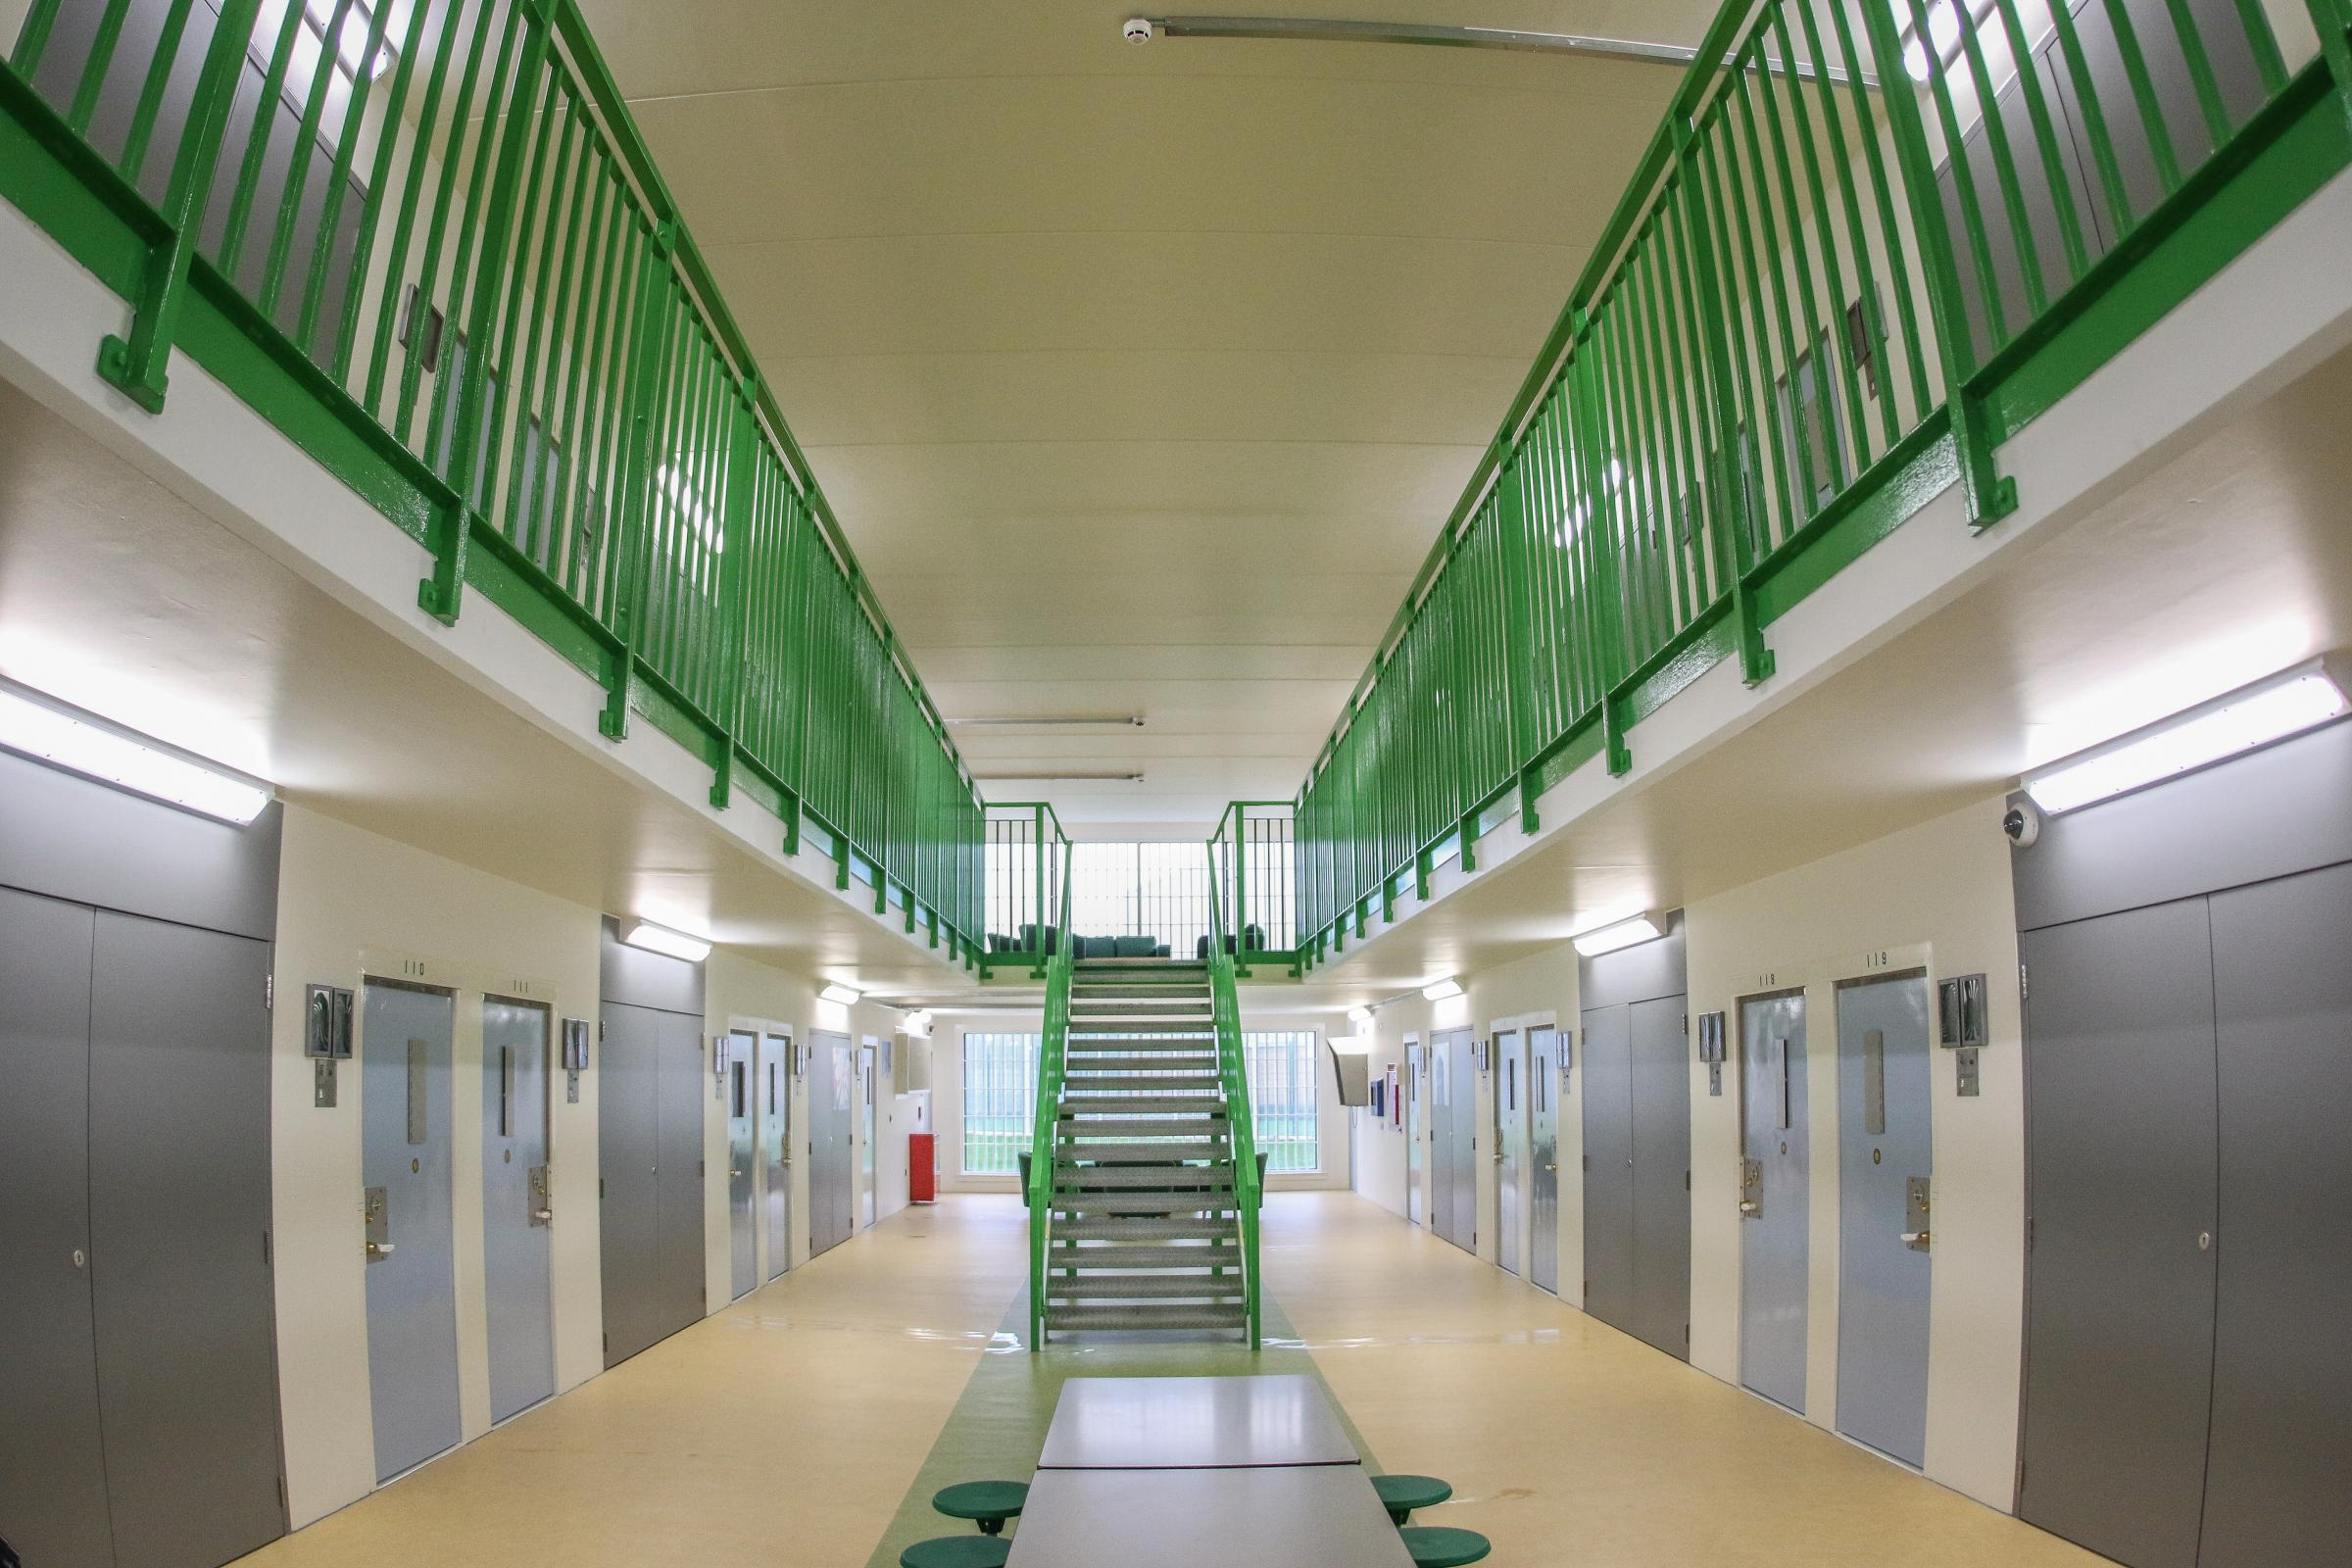 Prisoner found dead in his Wrexham cell on New Year's Day had suffered a heart attack